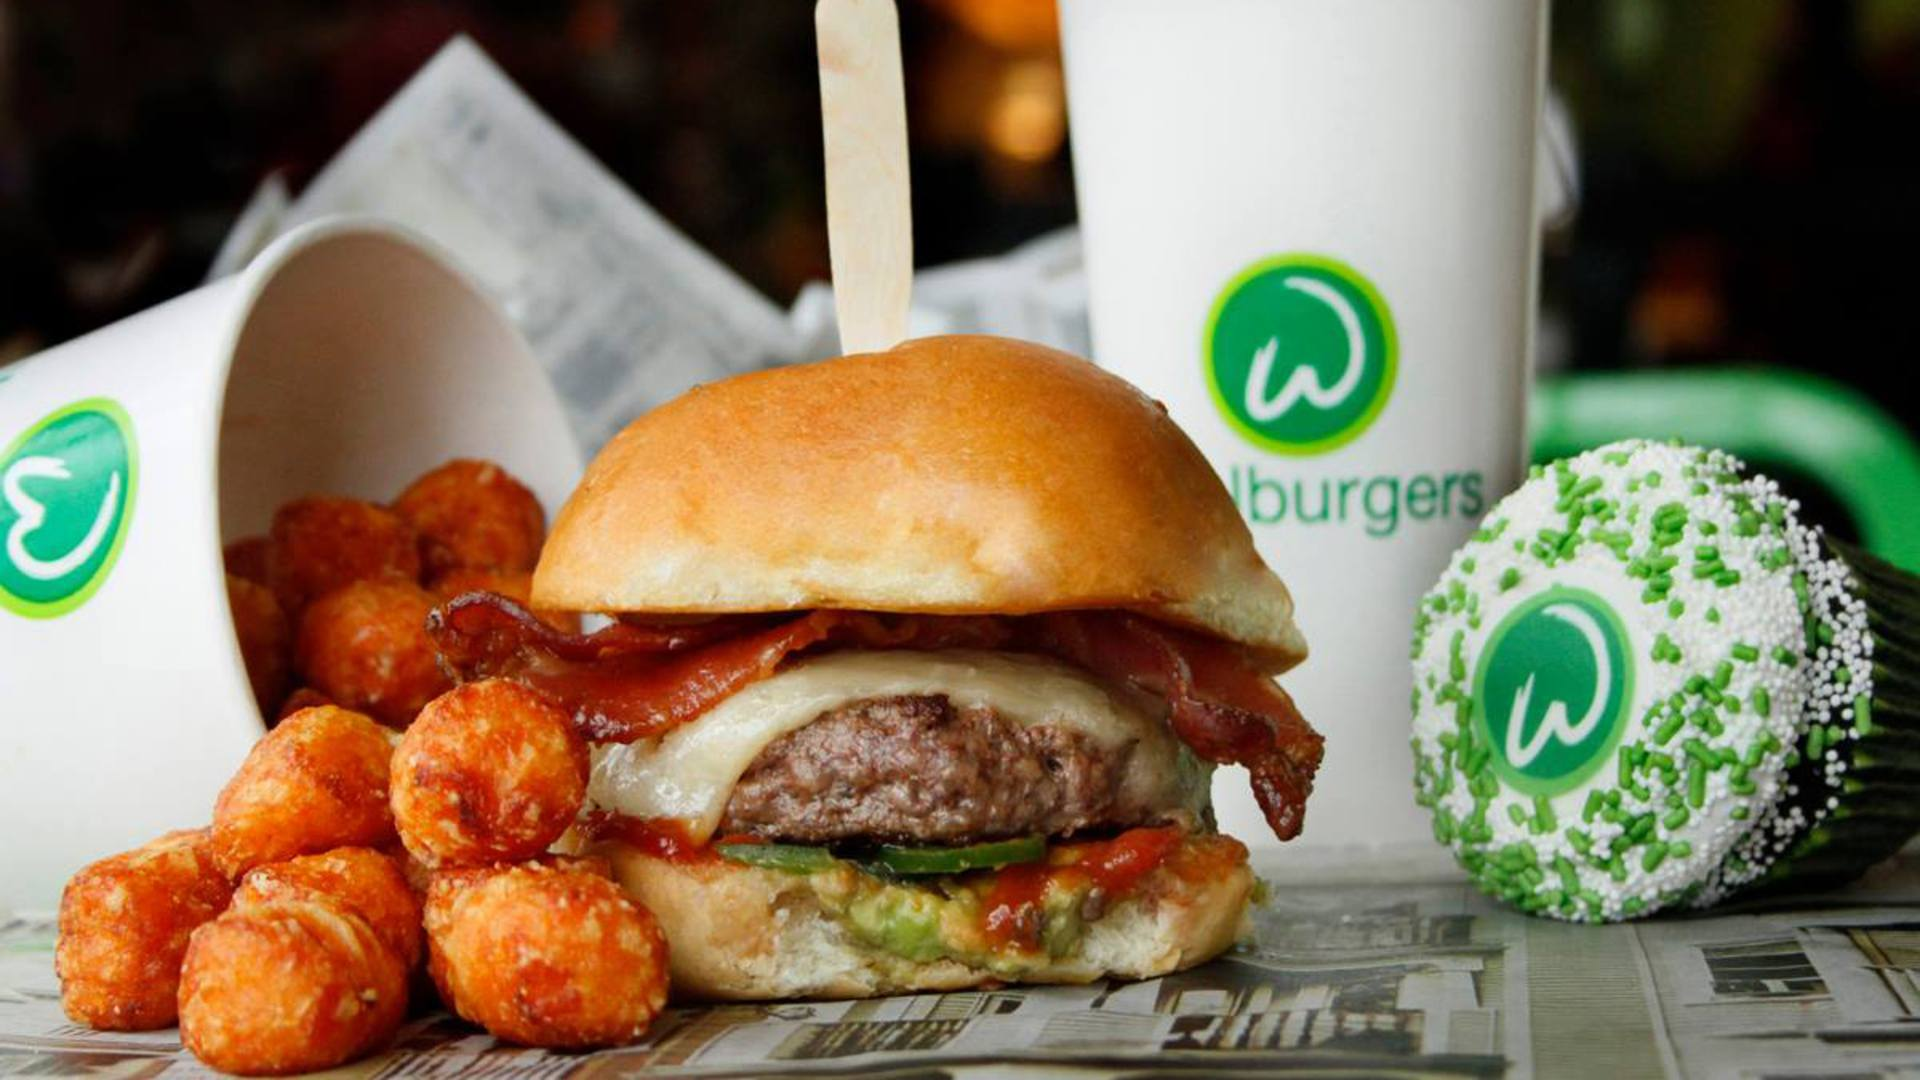 Wahlburgers burger restaurant by Mark Wahlberg in Covent Garden gets a bad restaurant review